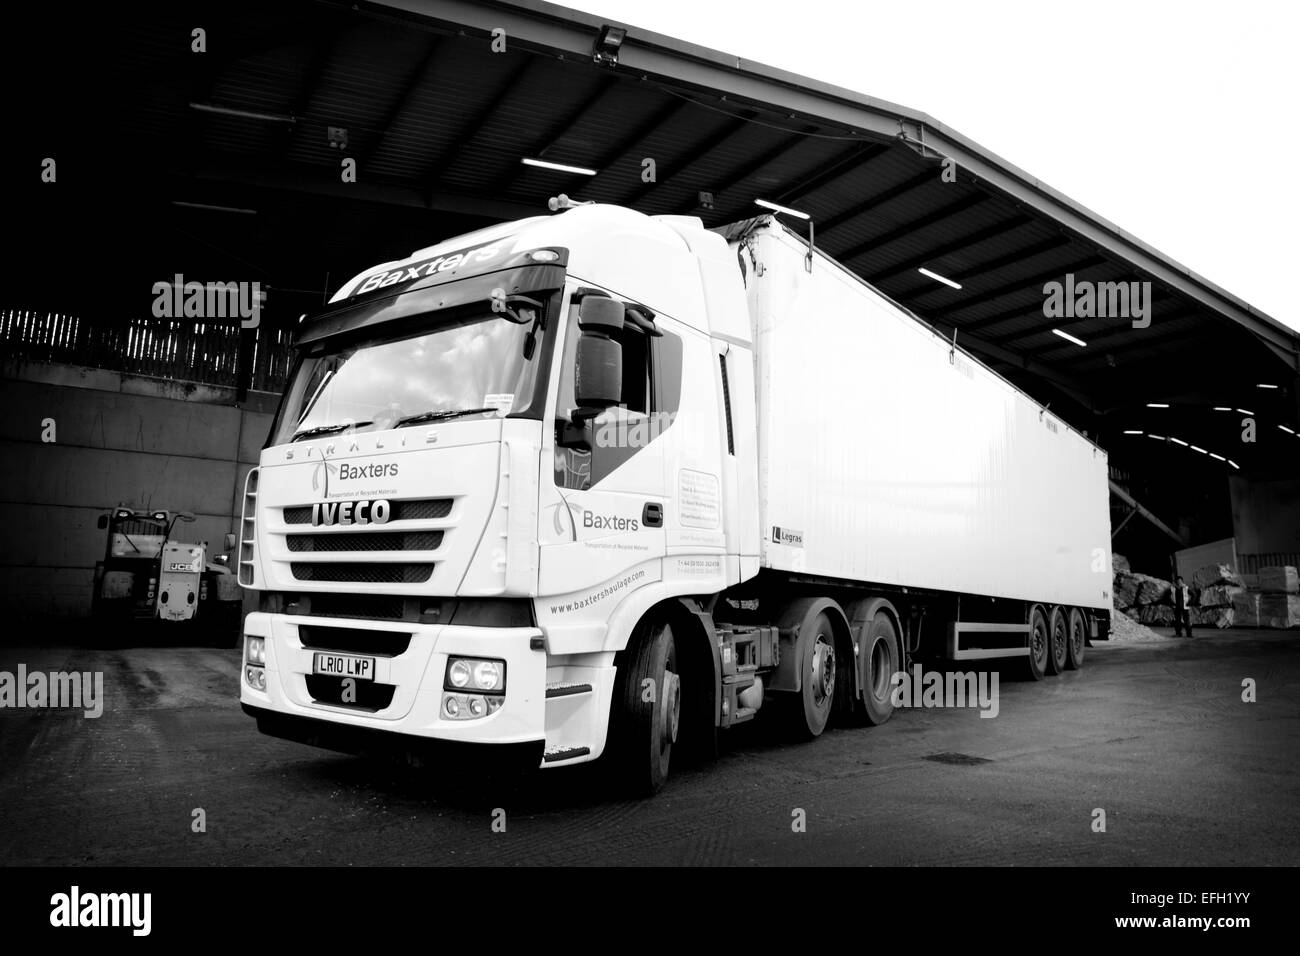 White lorry parked in loading bay at biomass plant, black and white - Stock Image